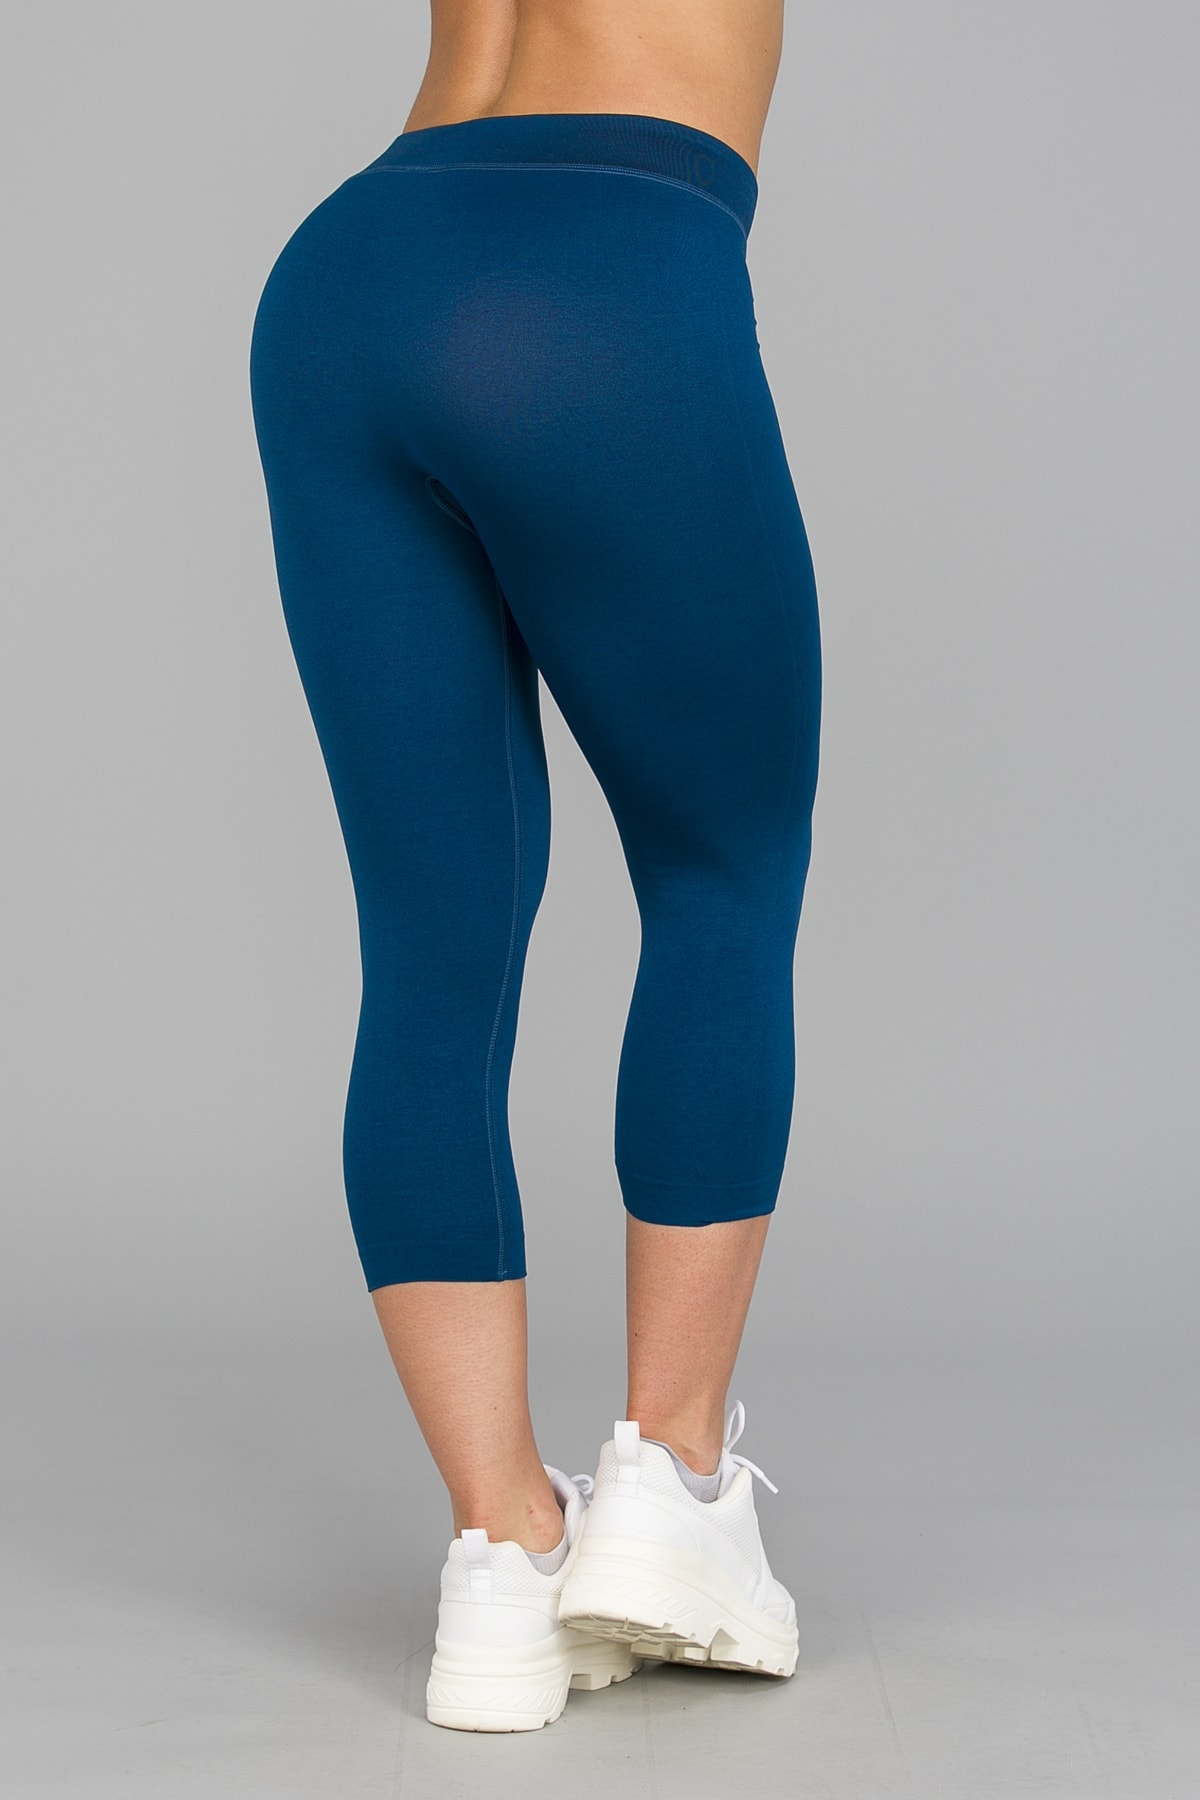 Jerf Captiva Tights (3:4) Navy13